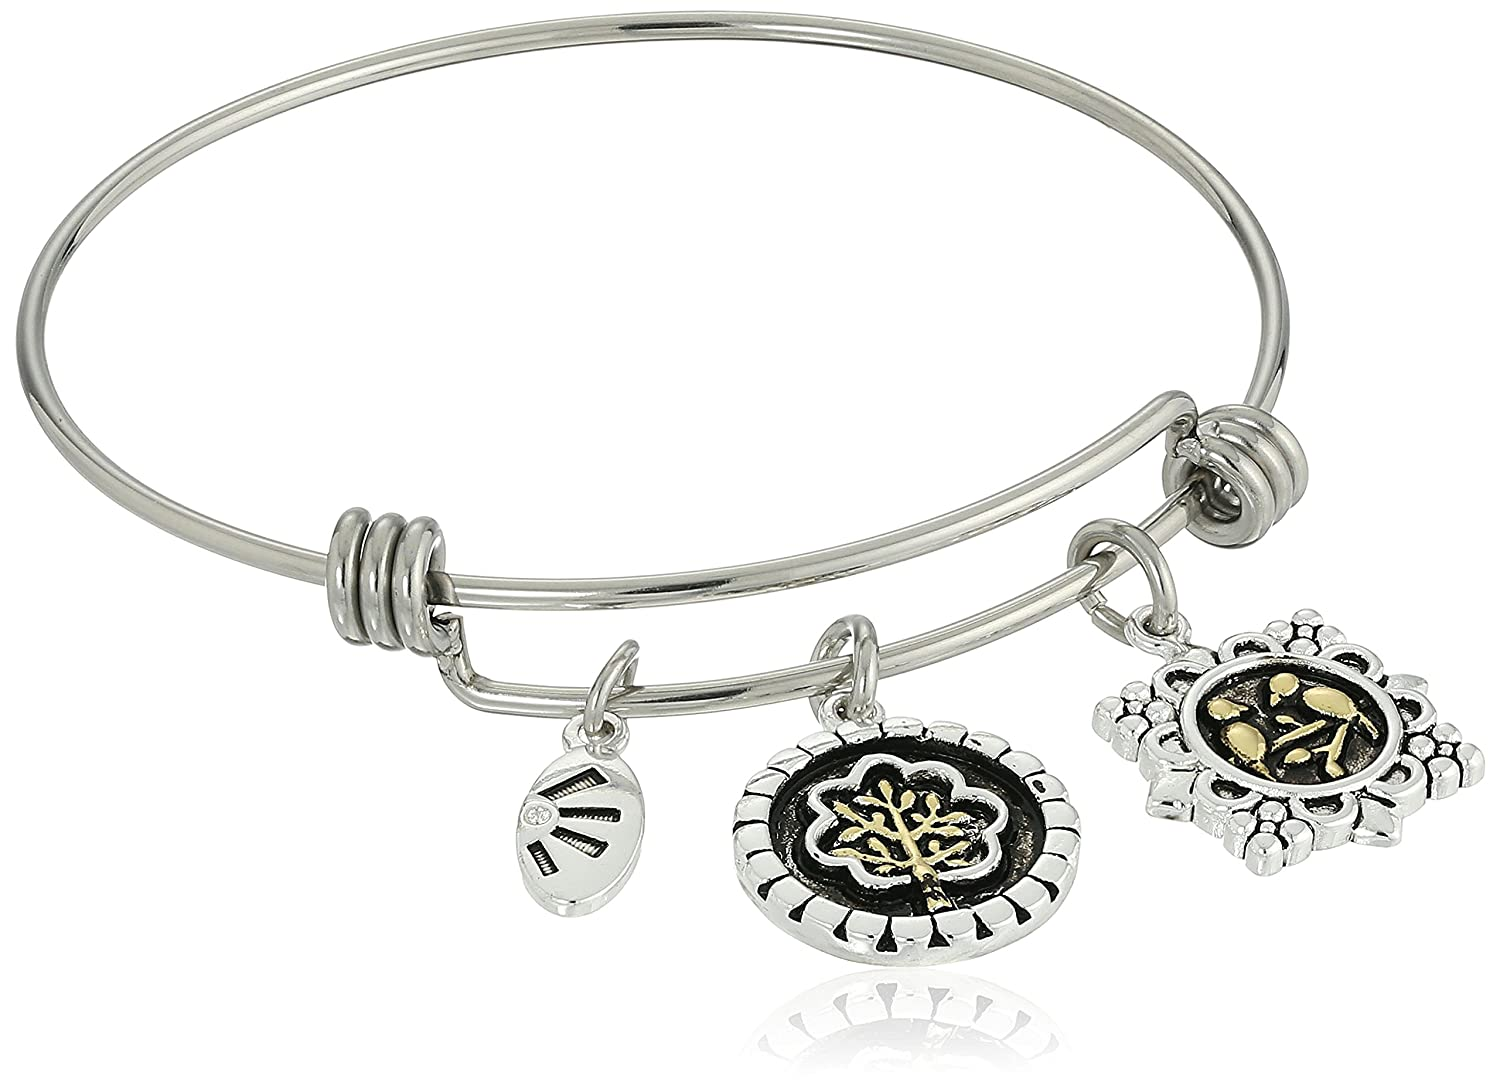 You Brighten My Day in a Lovely Way Adjustable Bangle Bracelet Two-Tone Silver Plated Our Lives May Grow in Different Directions Yet Our Roots Remain as One